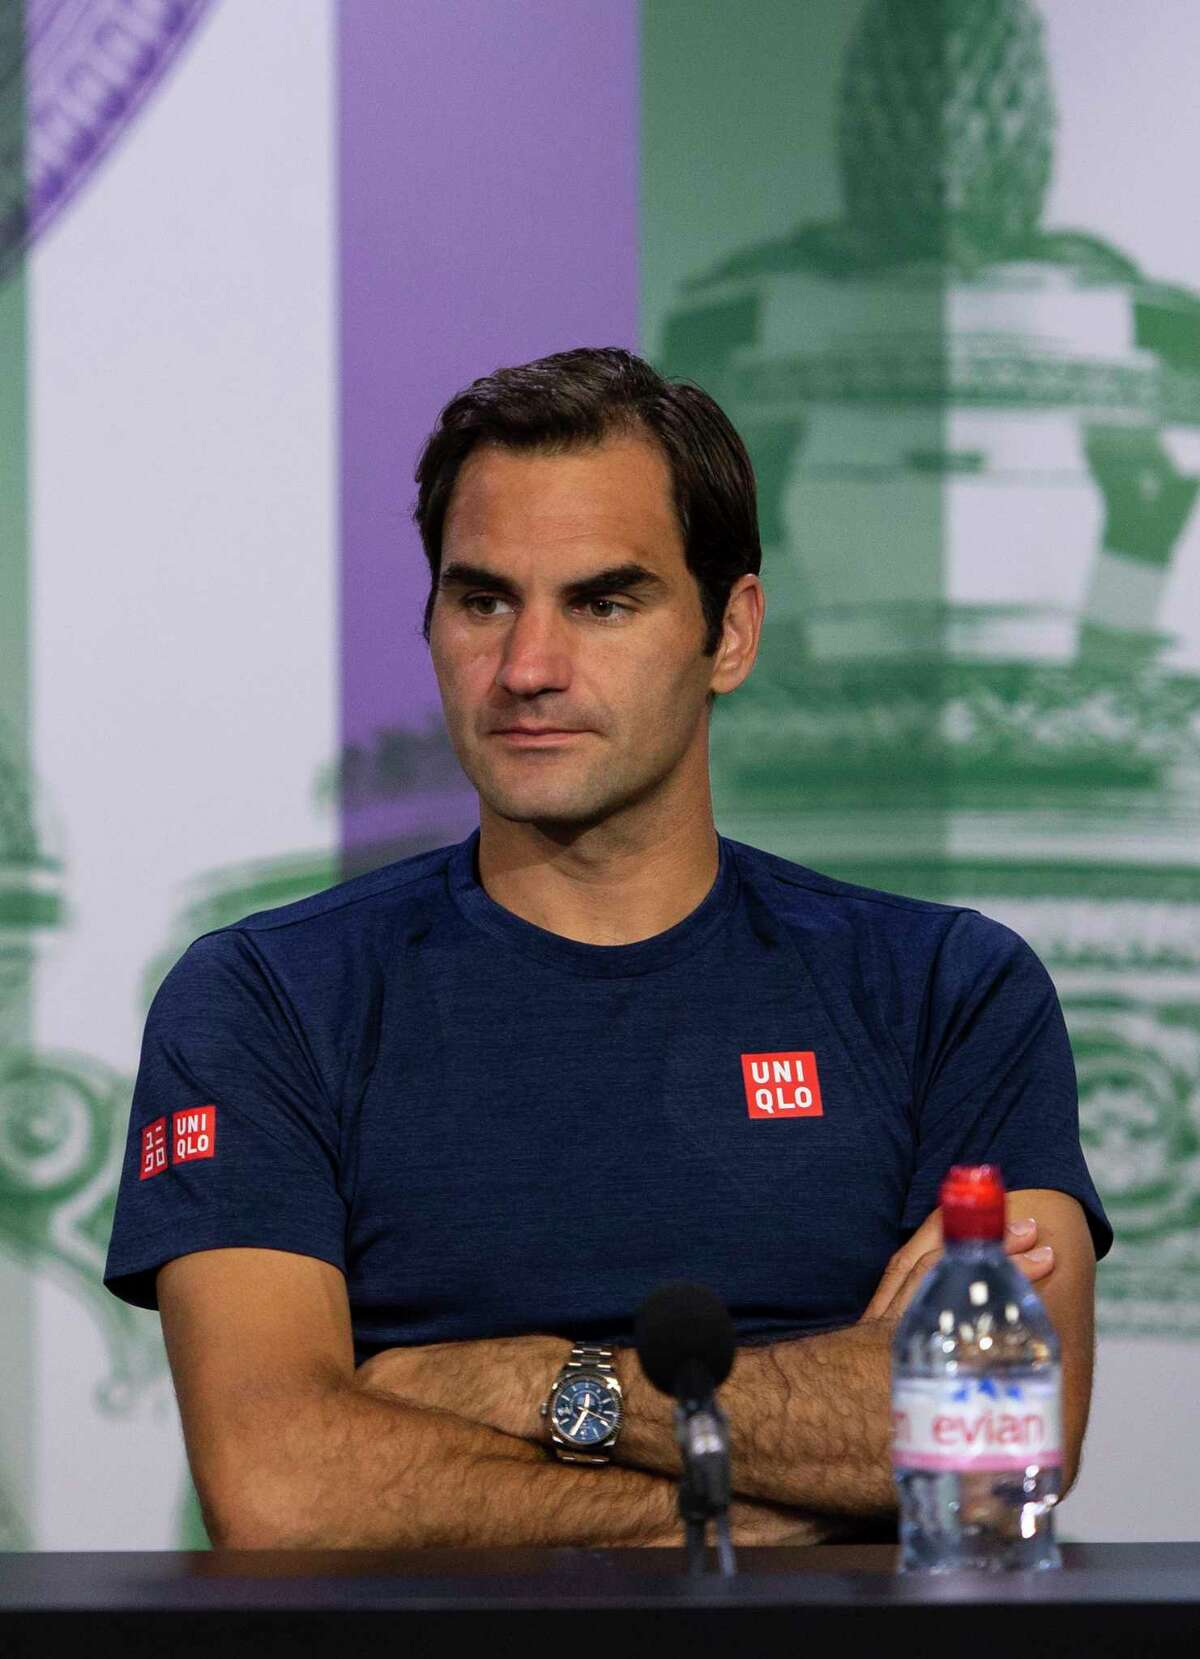 Roger Federer of Switzerland speaks during a press conference after being defeated by Kevin Anderson of South Africa in their men's singles quarterfinal match at the Wimbledon Tennis Championships in London, Wednesday July 11, 2018. (Florian Eisele/AELTC via AP)